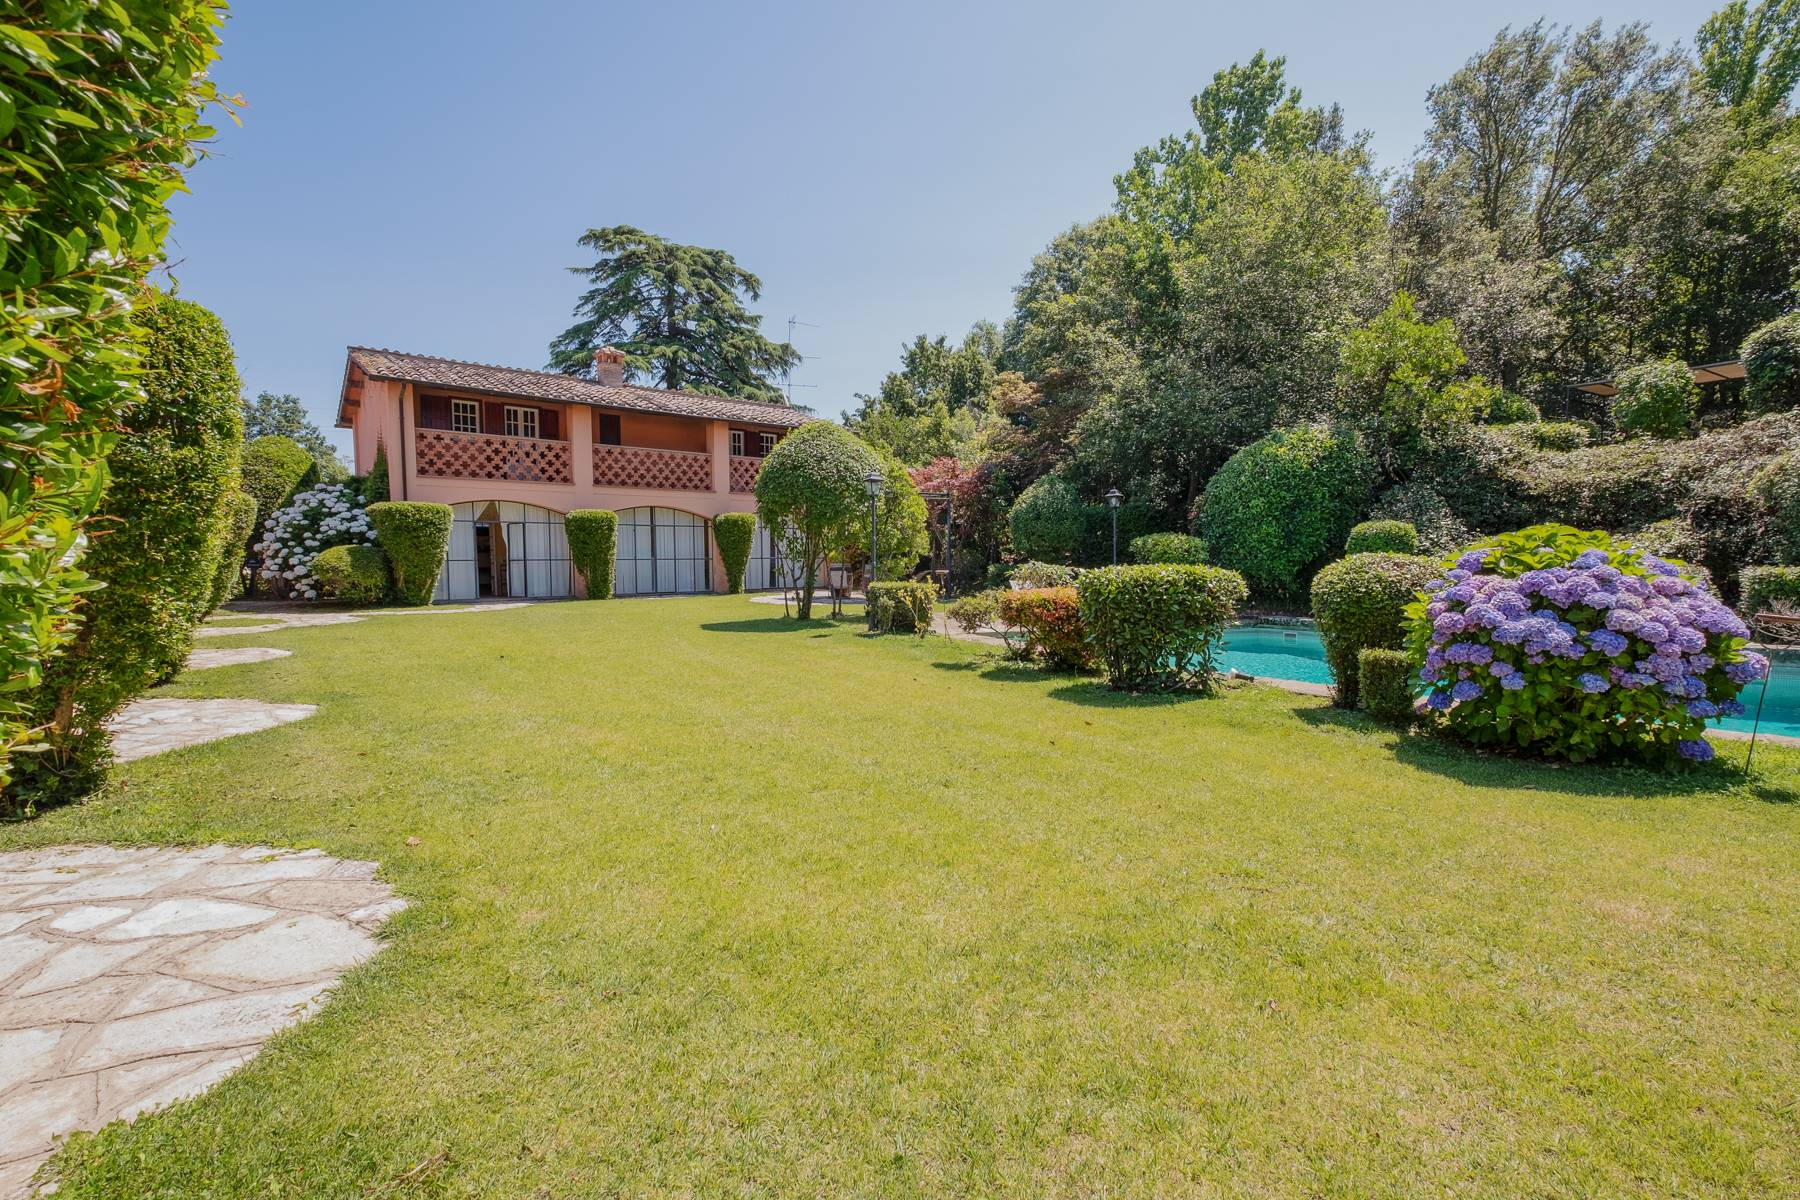 Claudia Estate: charm and elegance surrounded by nature - 8